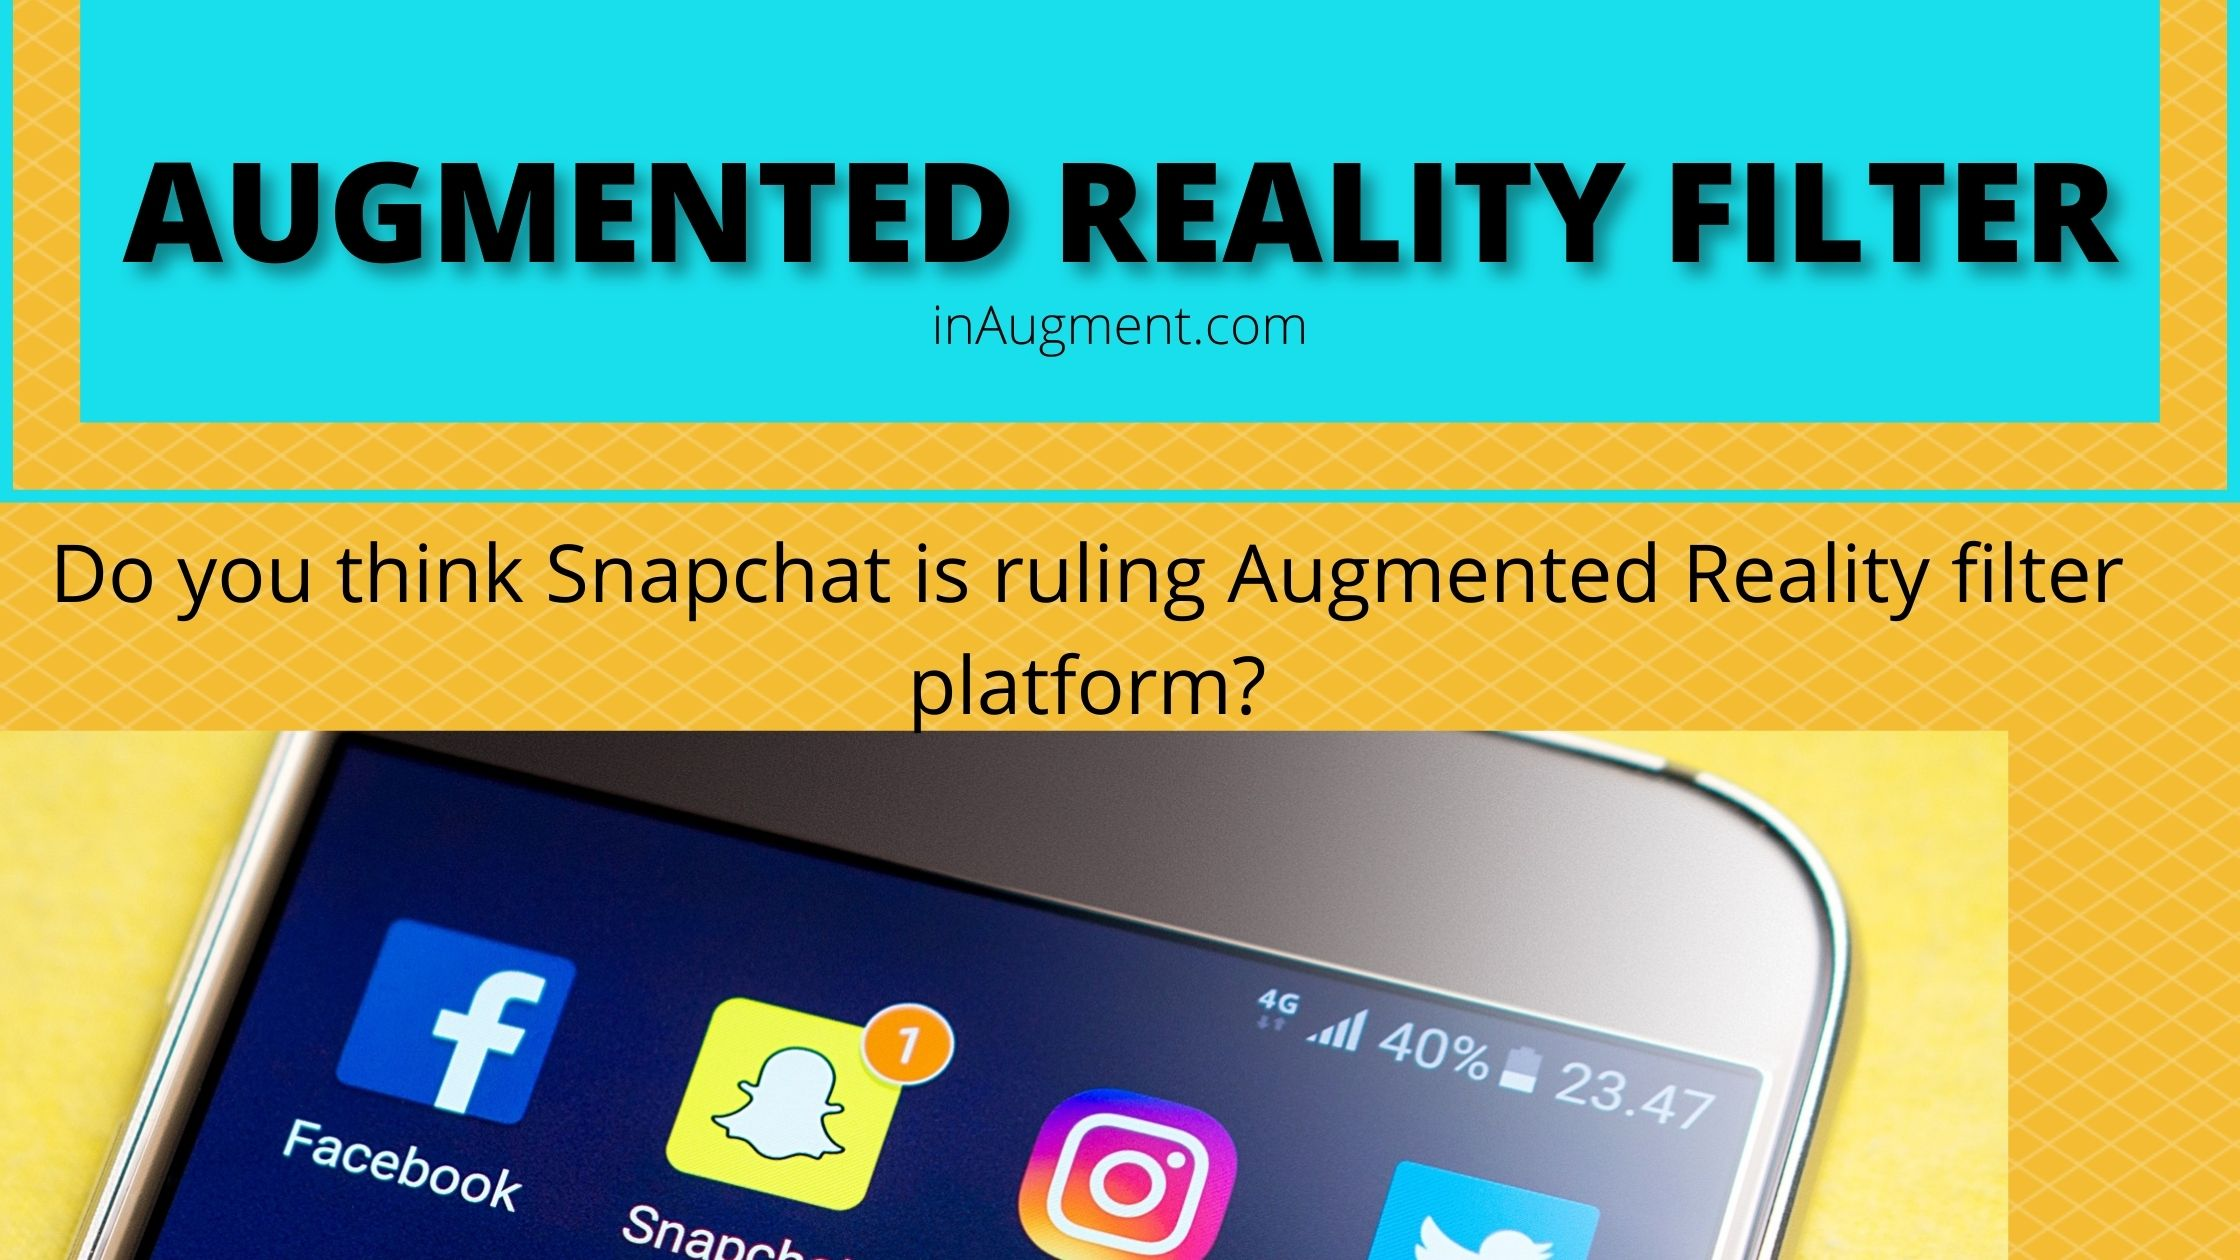 Augmented Reality filter